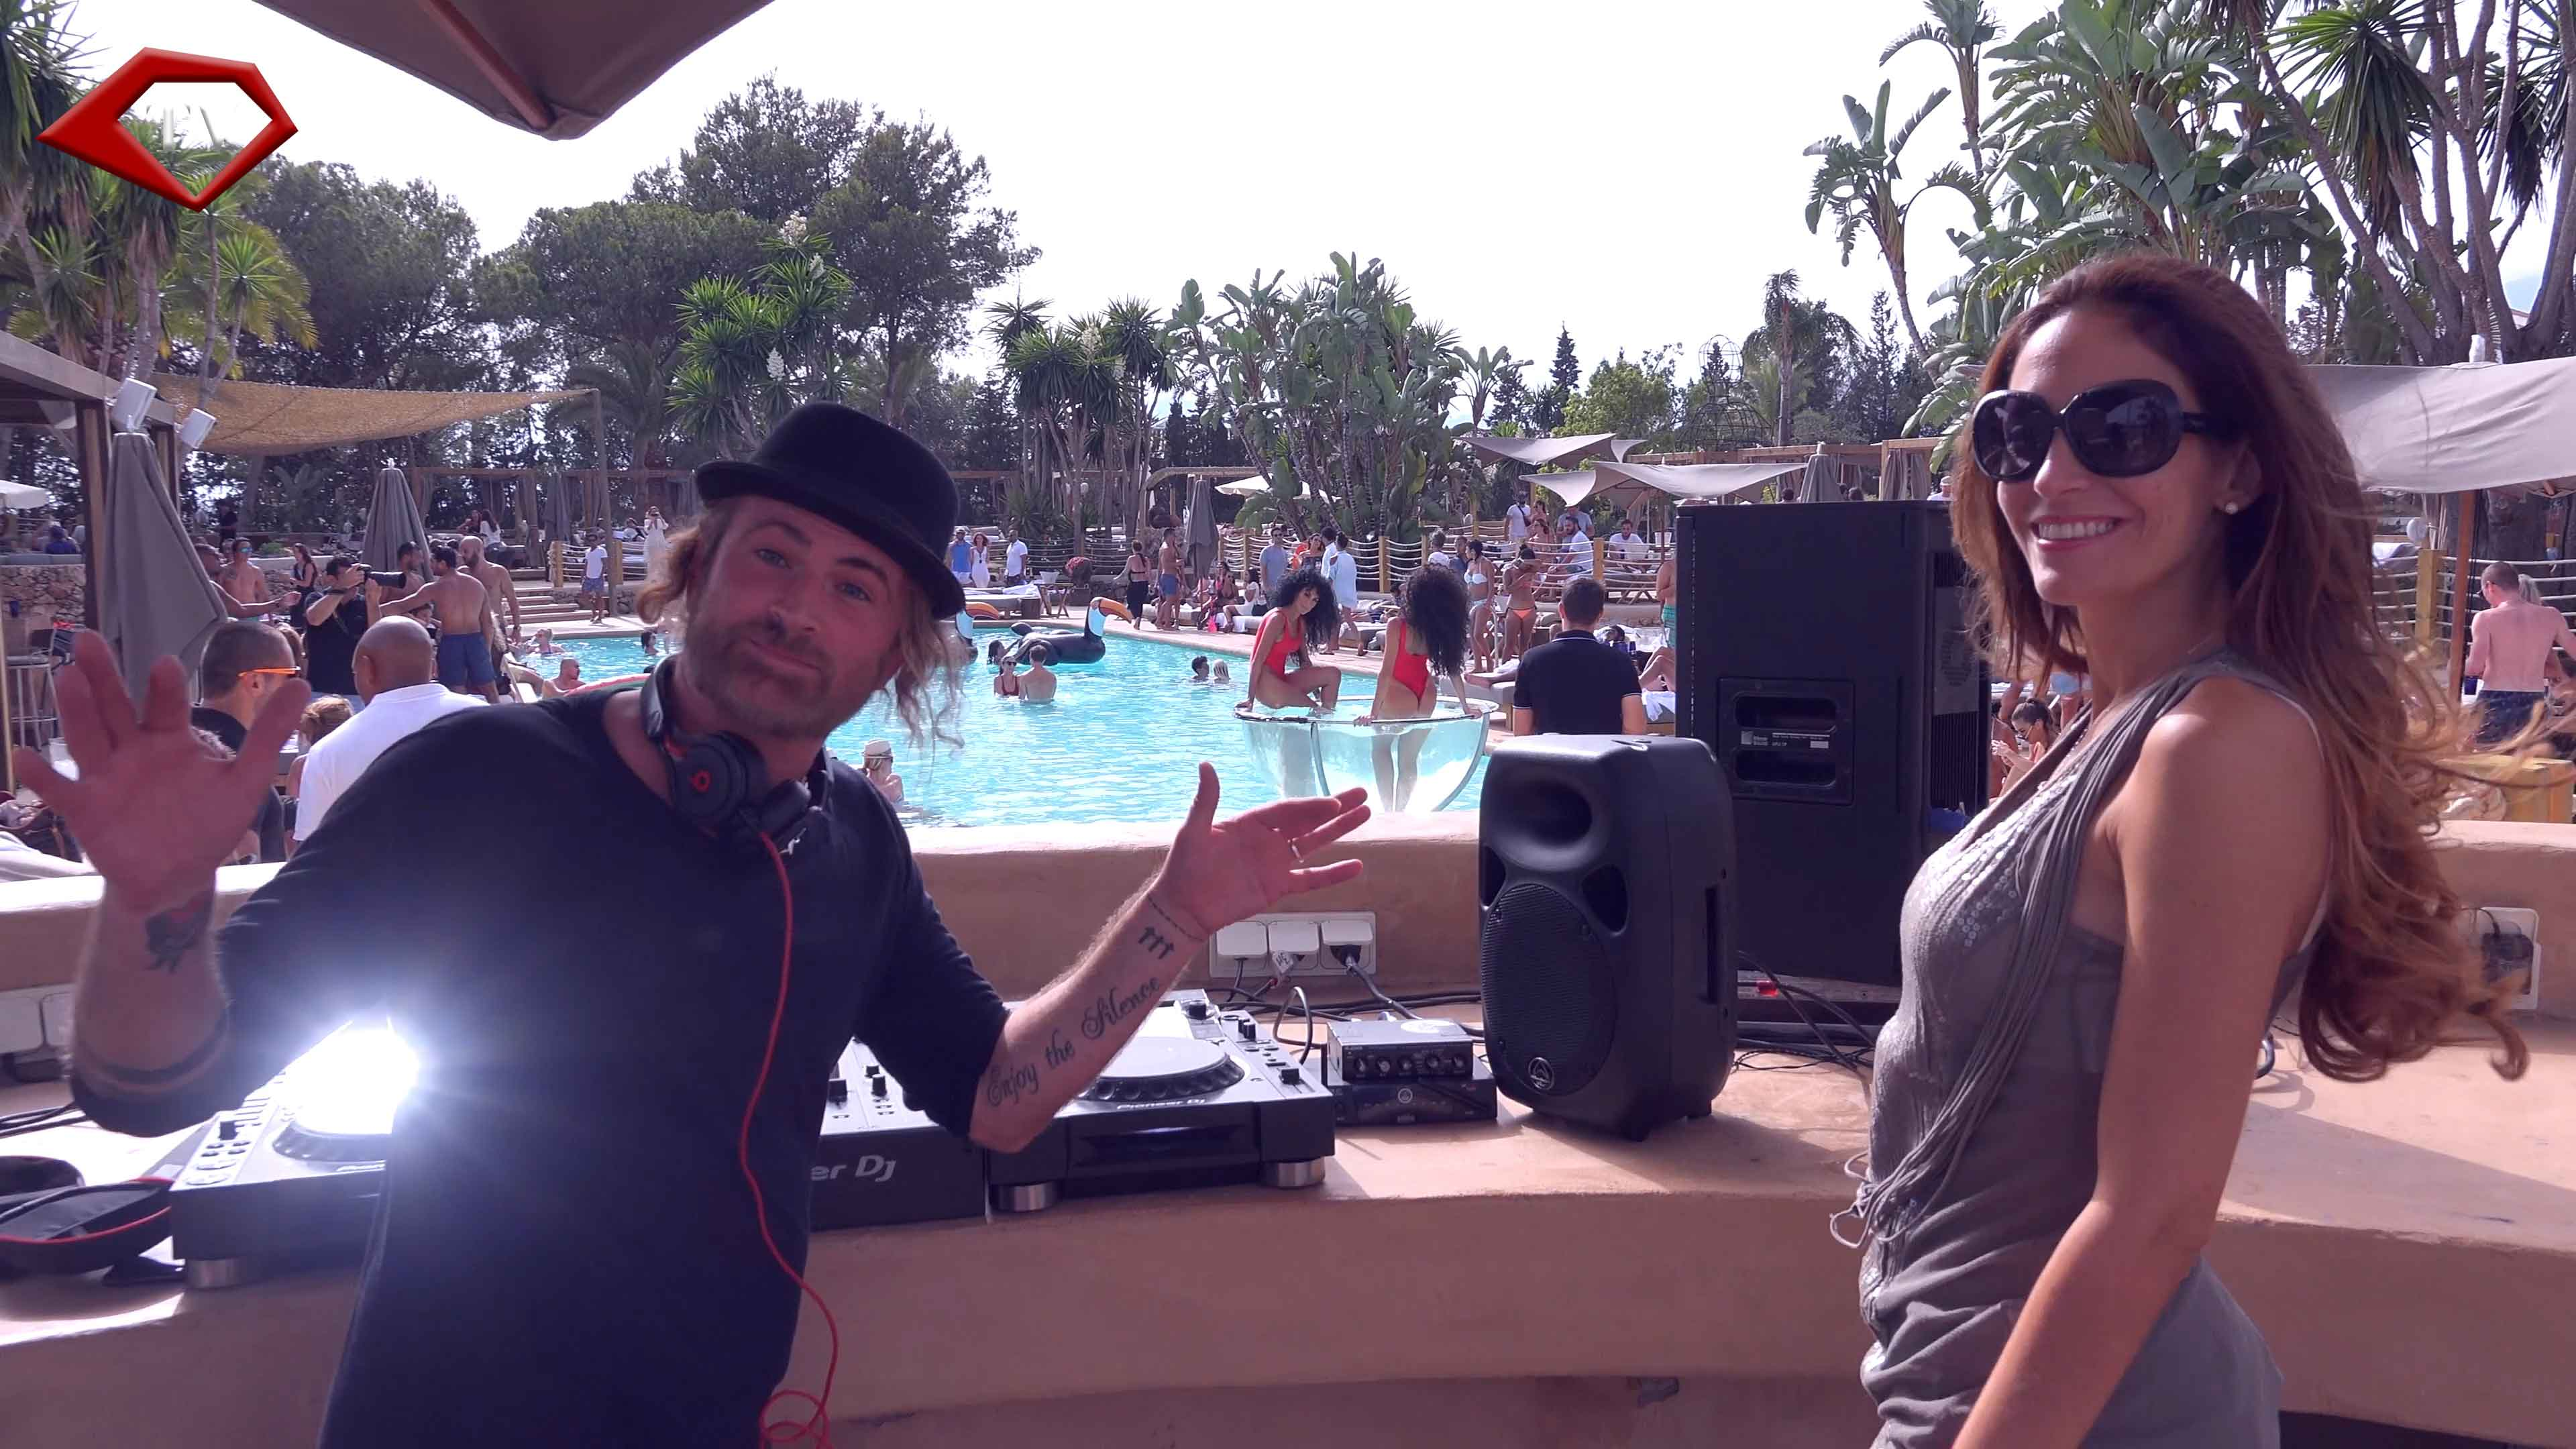 JP-Candela with Ariana Soffici at Nao Pool Club for Style Passion TV